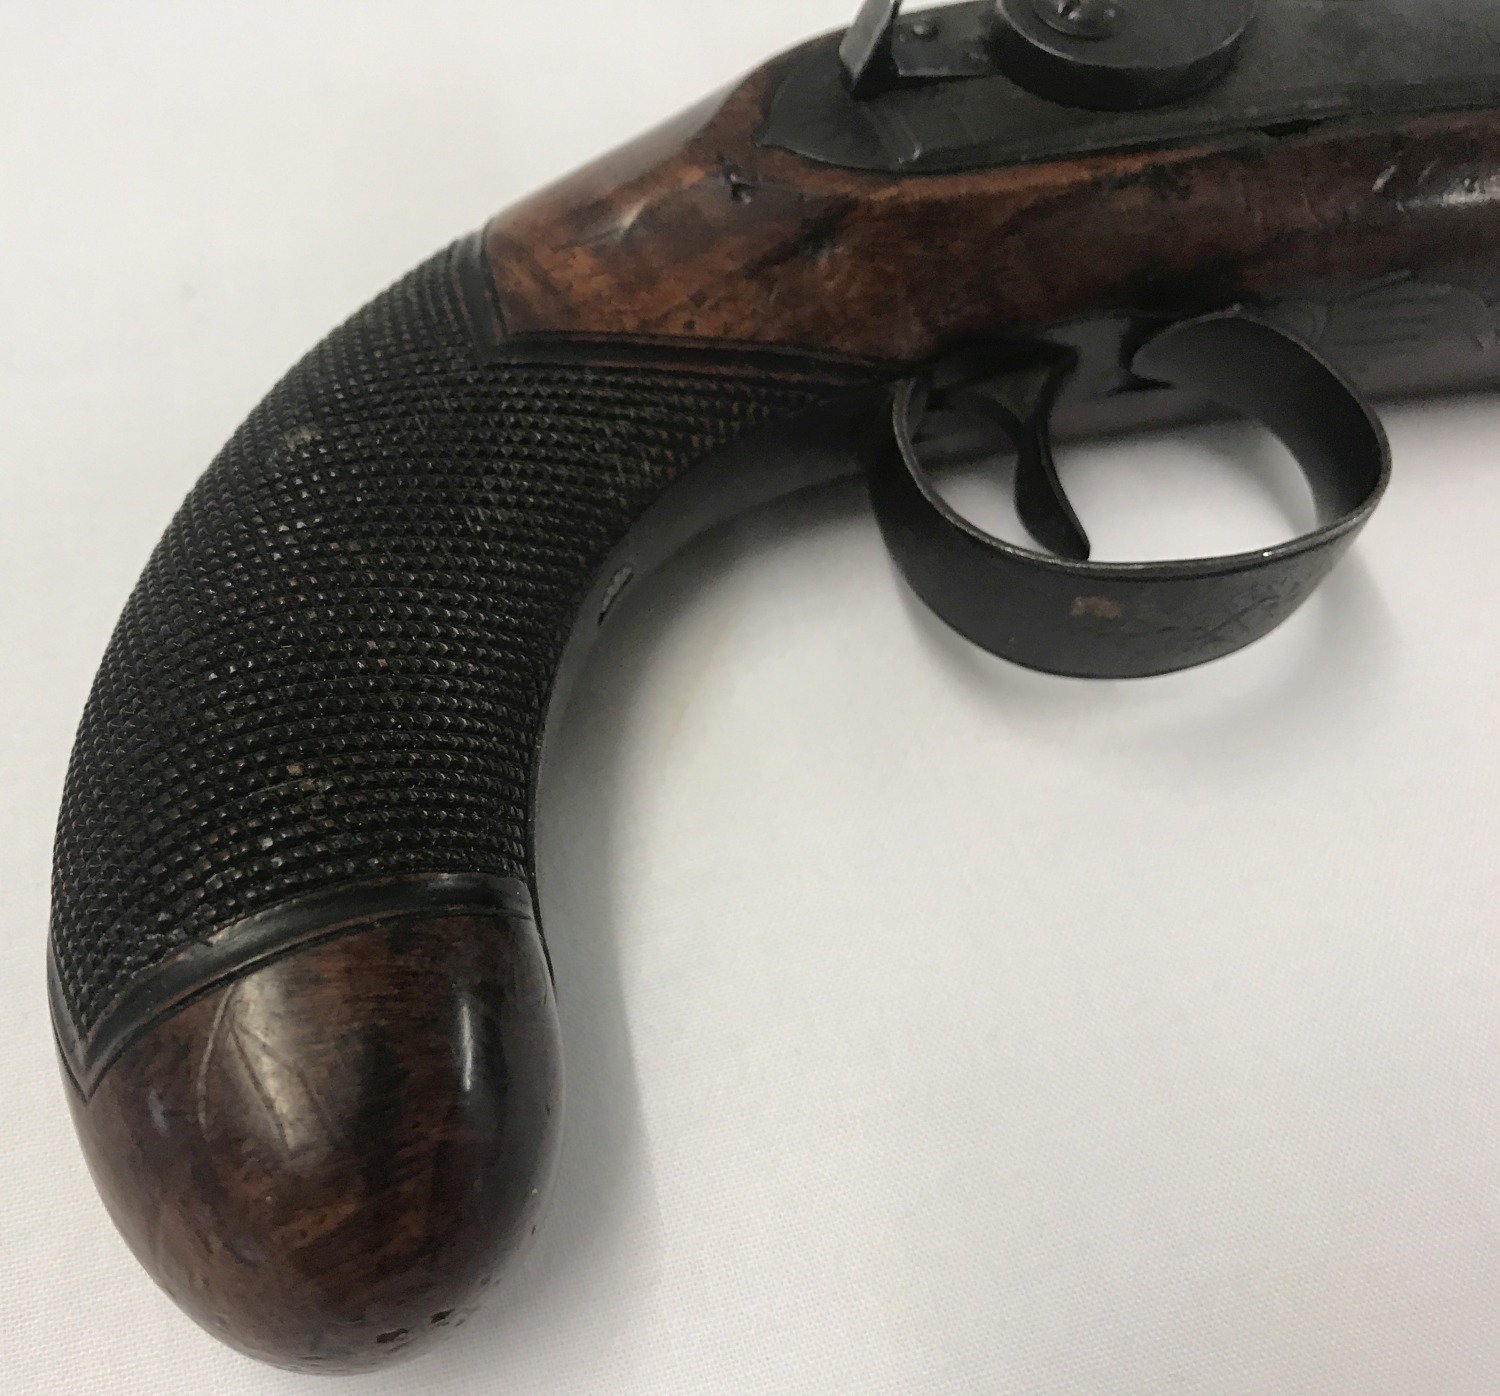 An antique percussion overcoat 20 bore pistol c 1835. - Image 2 of 5